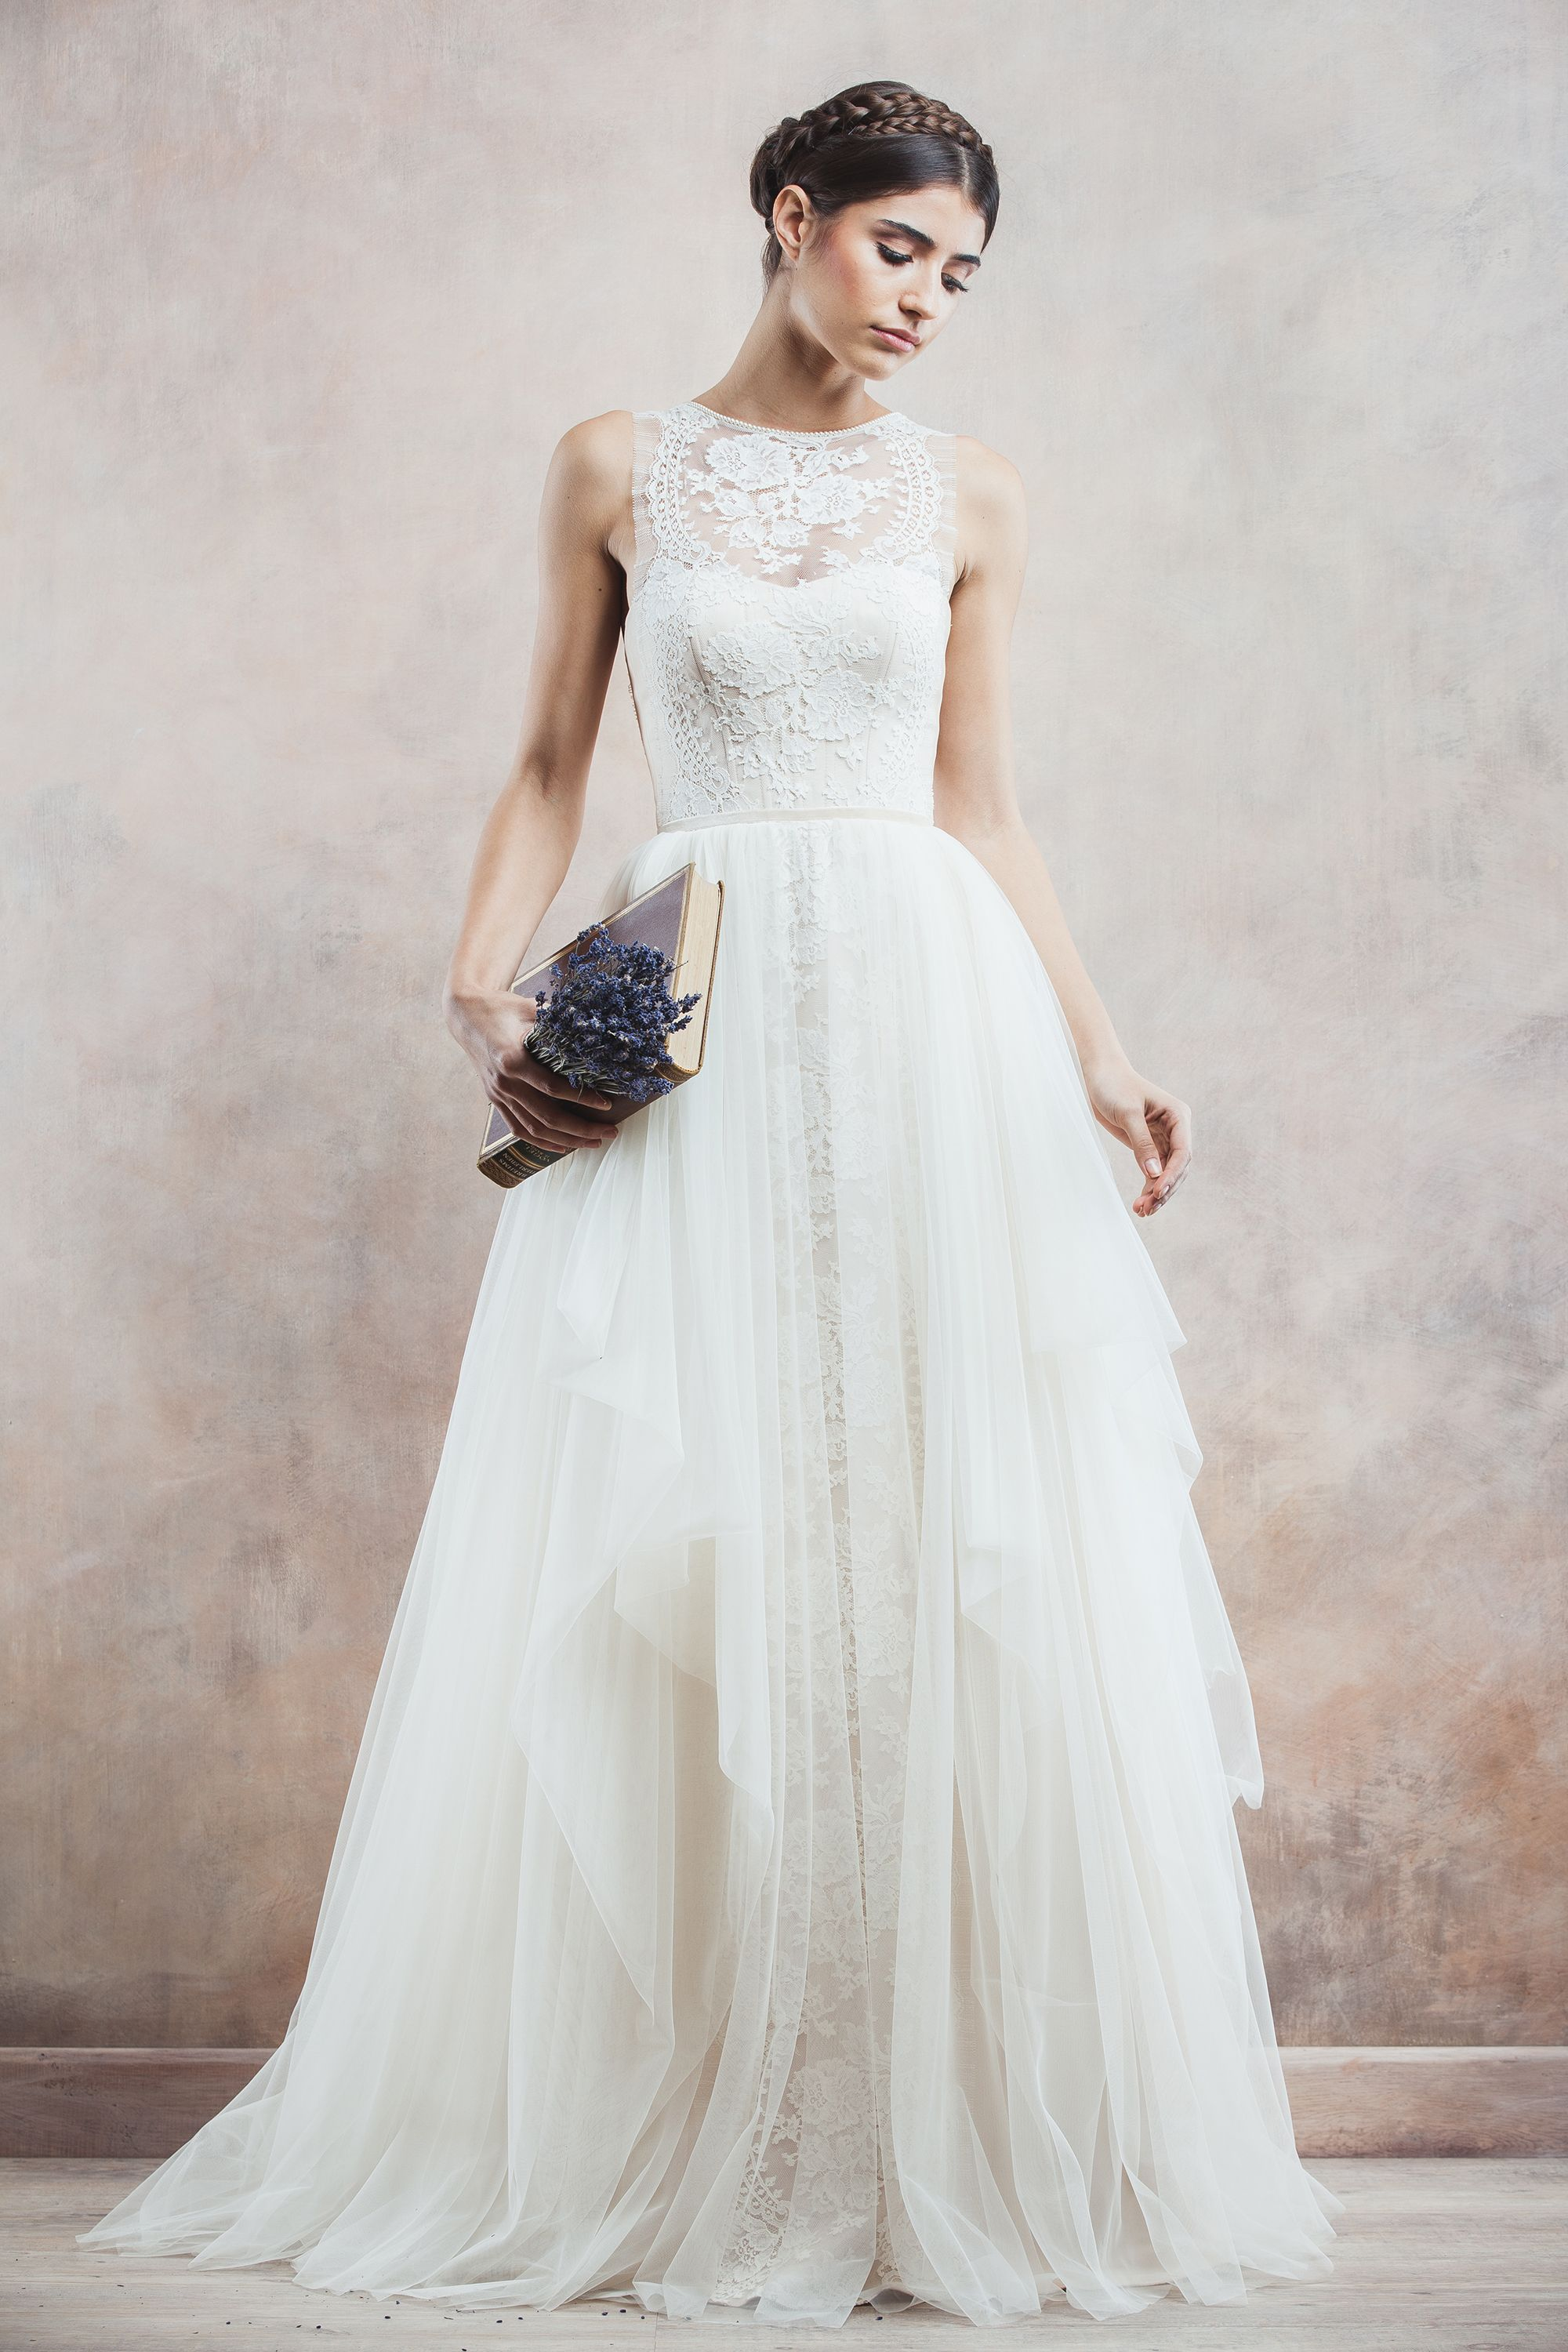 Looks like coming out of Russian literature, innocent and delicate, of pure femininity, iconic, the Anisia wedding gown is a love poem. The lace which makes us think of the dowry of an aristocratic grandma, delicately edged by Swarowski pearls, wavy tulle and the lavender bouquet, all enhance mystery and define the atmosphere of your own love poem.